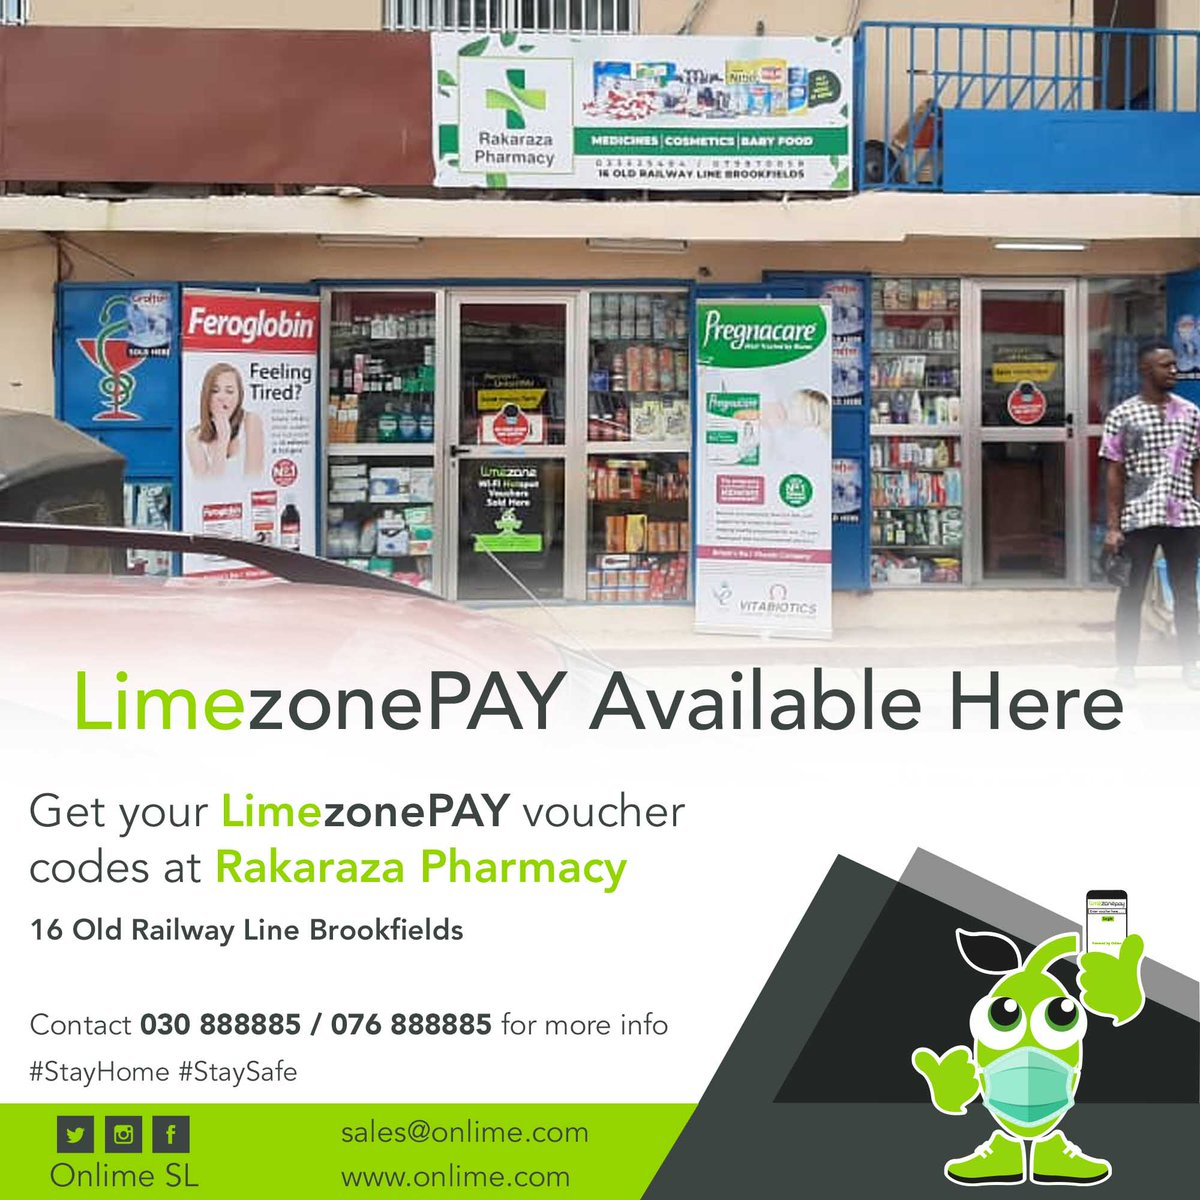 Get your LimezonePAY Voucher codes from Rakaraza Pharmacy, 16 Old Railway Line Brookfields. contact +23230888885/+23276888885 for more info. #StayConnected #StaySafe #LimezonePAY https://t.co/xr9gPFlfPY